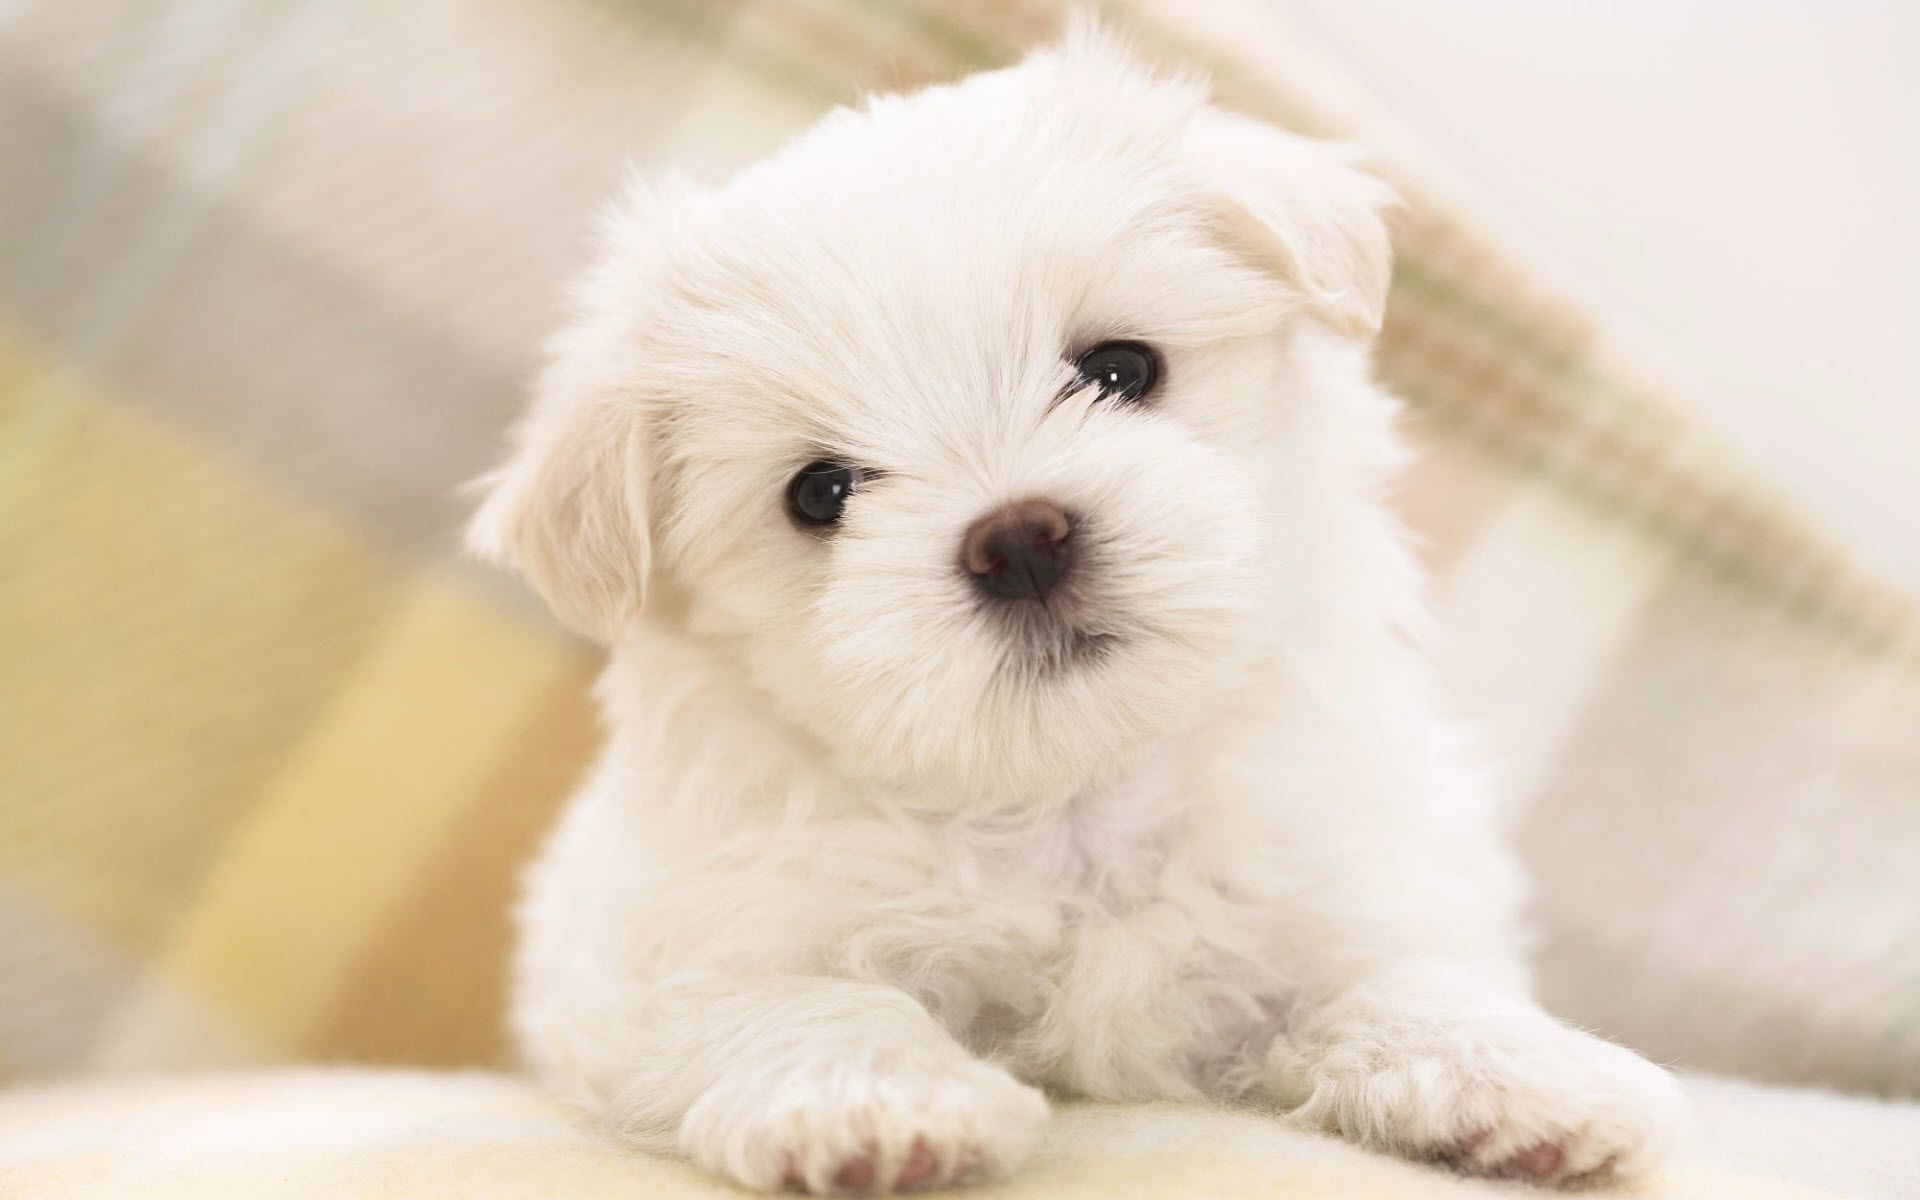 Top 10 Punto Medio Noticias | Free Puppy Desktop Wallpaper